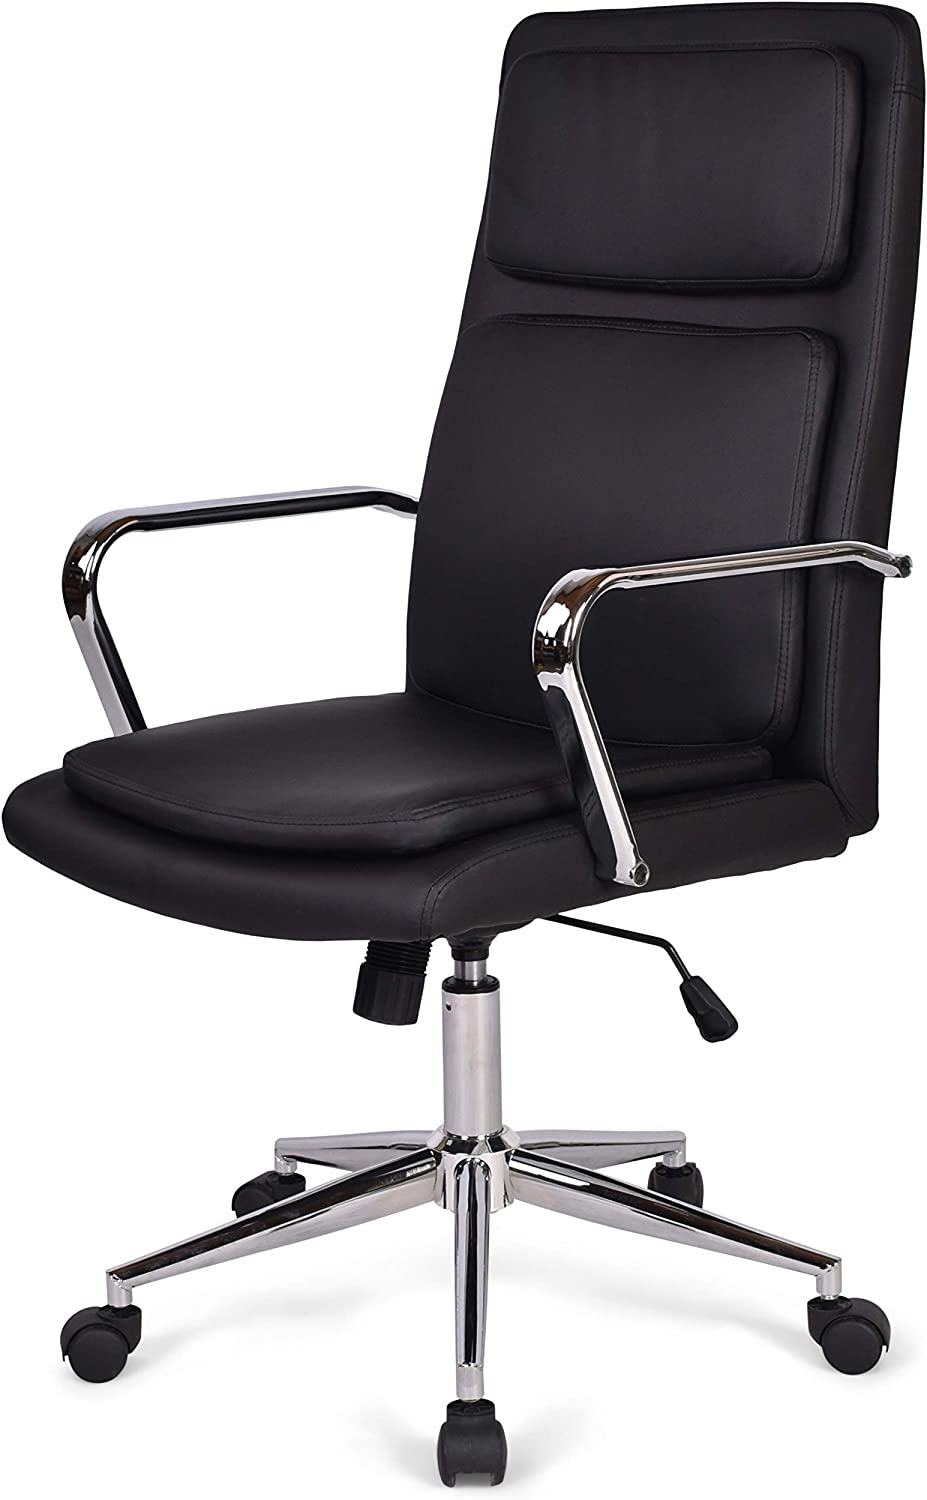 Simpli Home Swanson Swivel Adjustable Executive Computer Office Chair in Black